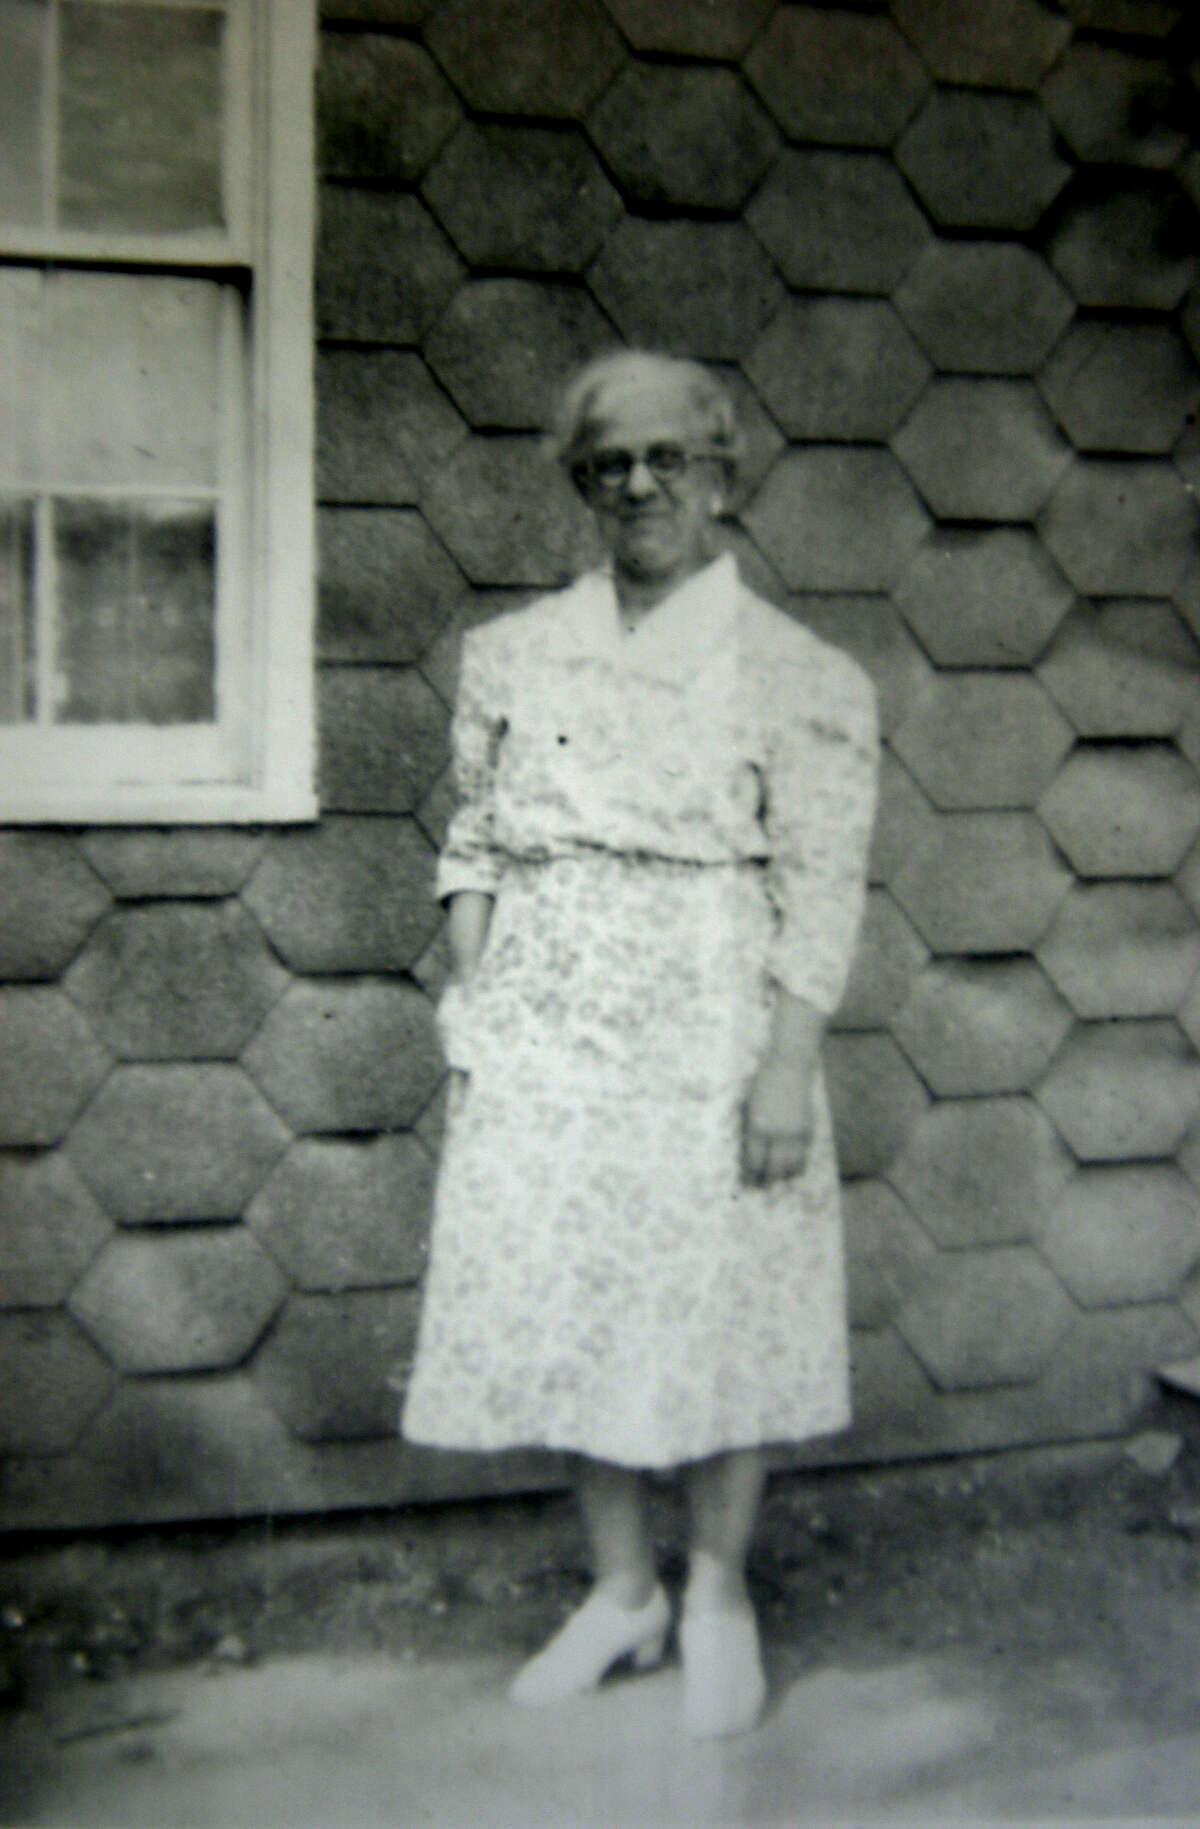 2004: The body of Emma Perreault Moccio was found in February 2004, nearly six decades after she was murdered and dumped in a 55-gallon drum beneath the soil of a South Pearl Street business in Albany. She was identified from her wedding ring, a bracelet with her maiden name and 1940s currency in her pocket. She had last been seen alive in 1946 walking with her husband, Ralph Moccio. Police investigated, but speculated she may have packed up and fled her husband. Emma Moccio was buried at Memory's Garden in Colonie in 2004.